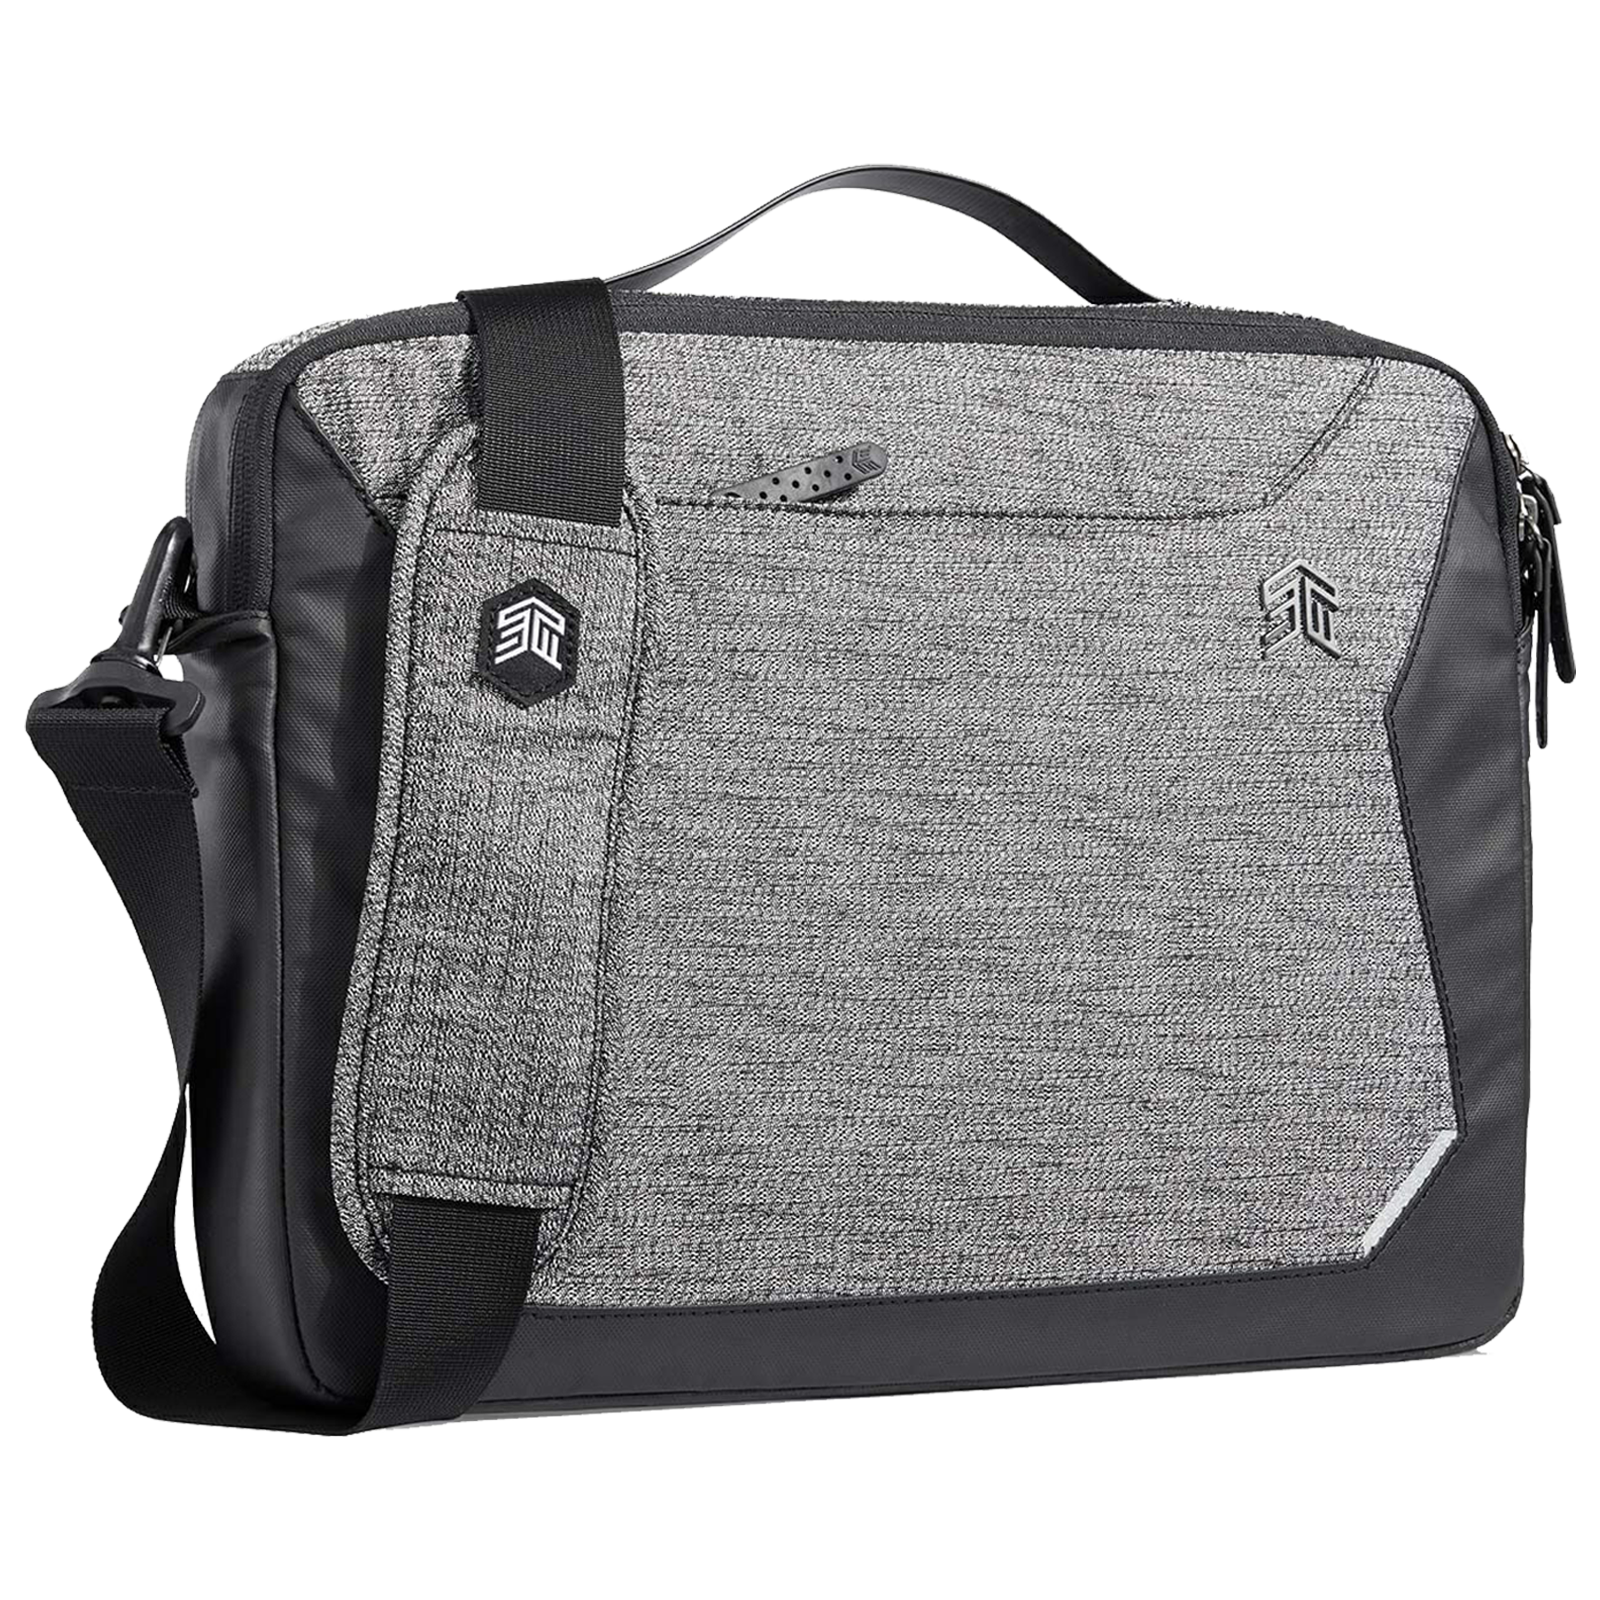 STM Myth Brief 7 Litres Polyester Carry Case for 13 Inch Laptop (Reverse Coil Zippers, STM-117-185M-01, Granite Black)_1